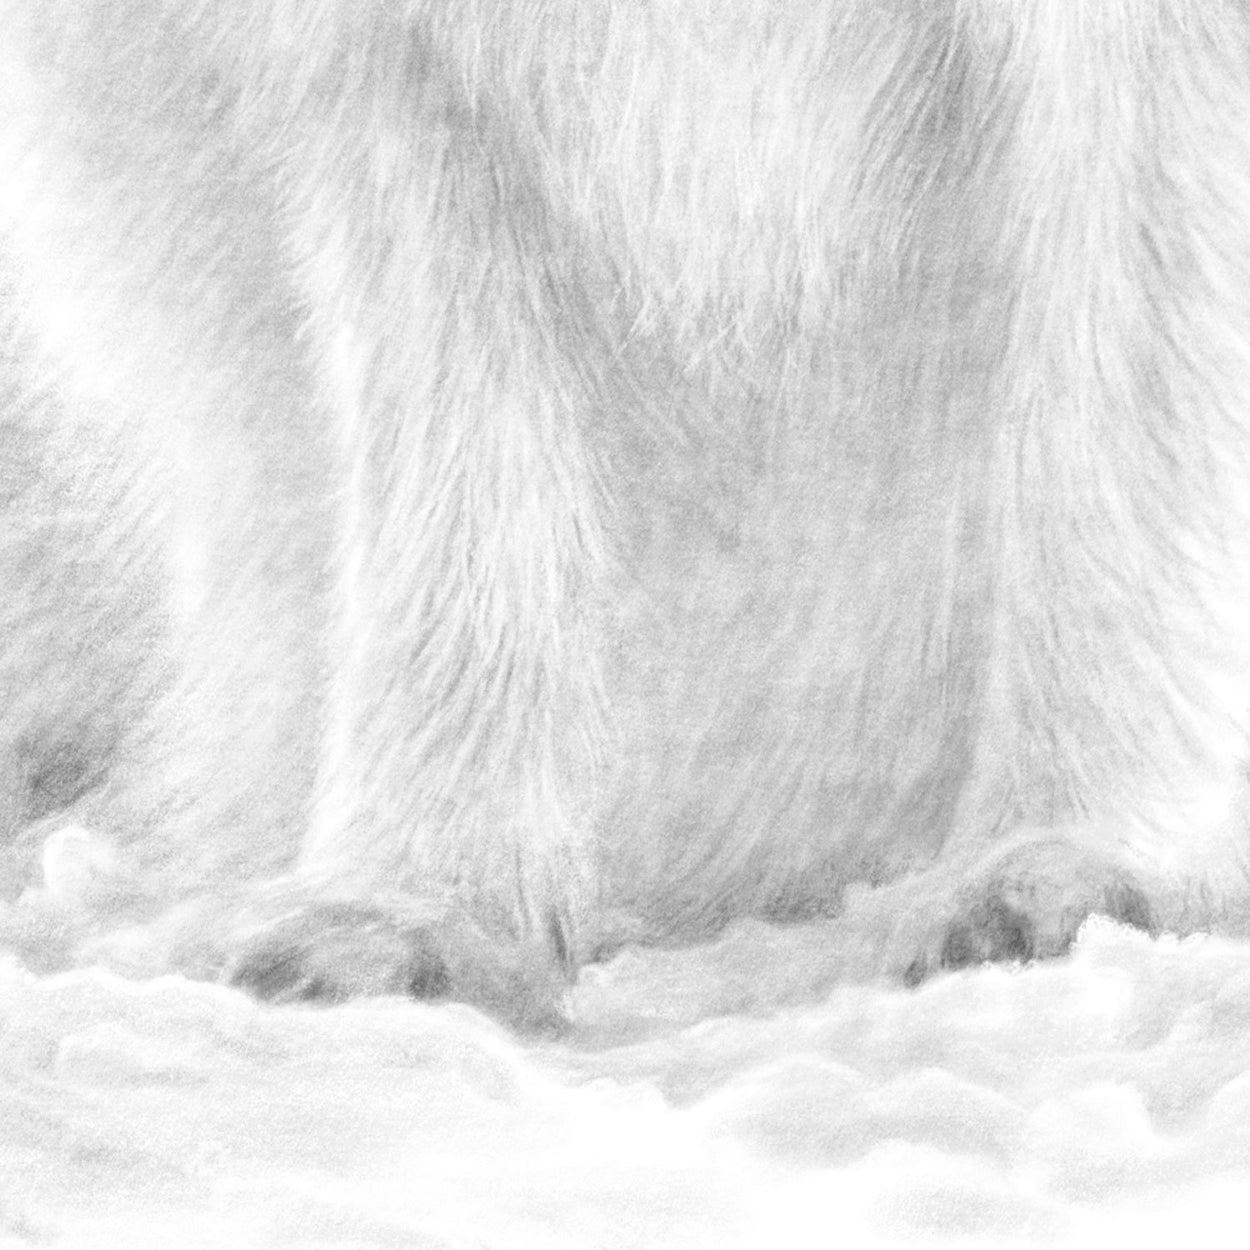 Arctic Fox Drawing Close-up - The Thriving Wild